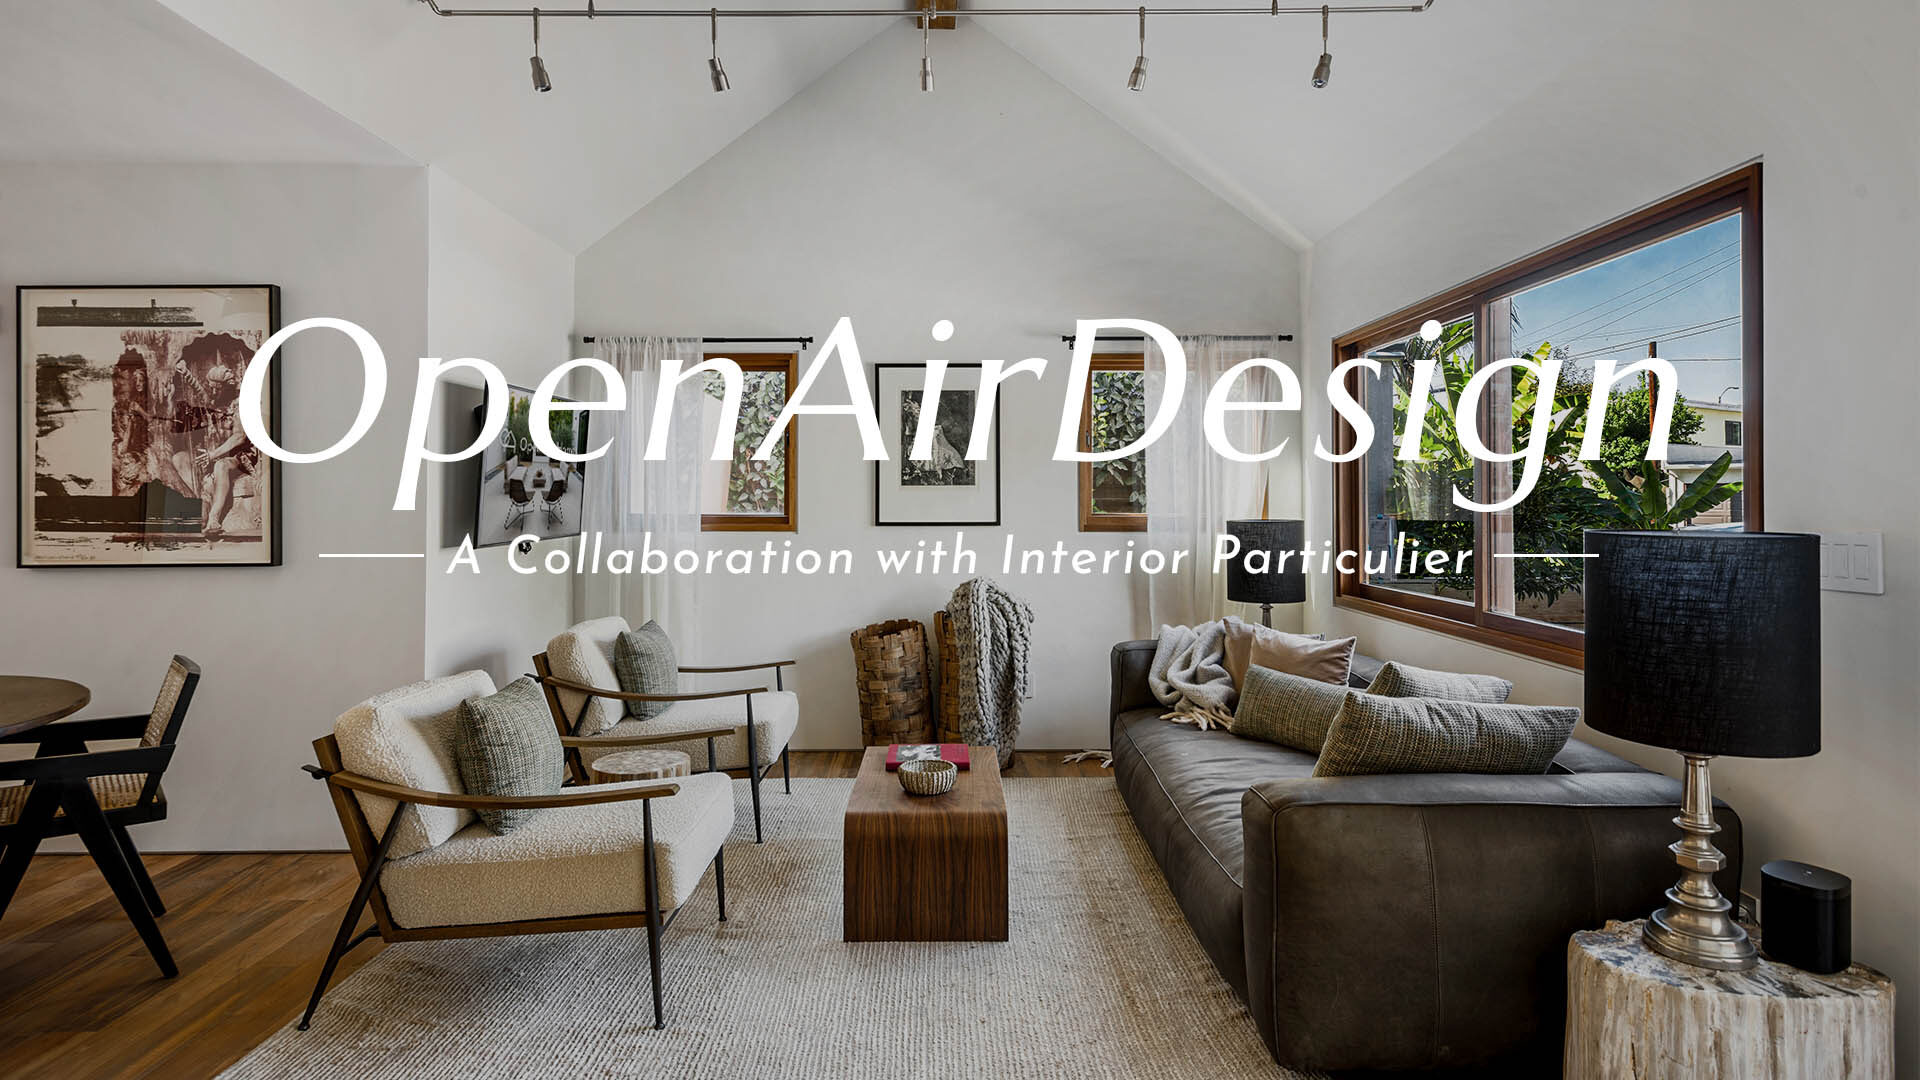 Open Air Design - A collaboration with Interior Particulier